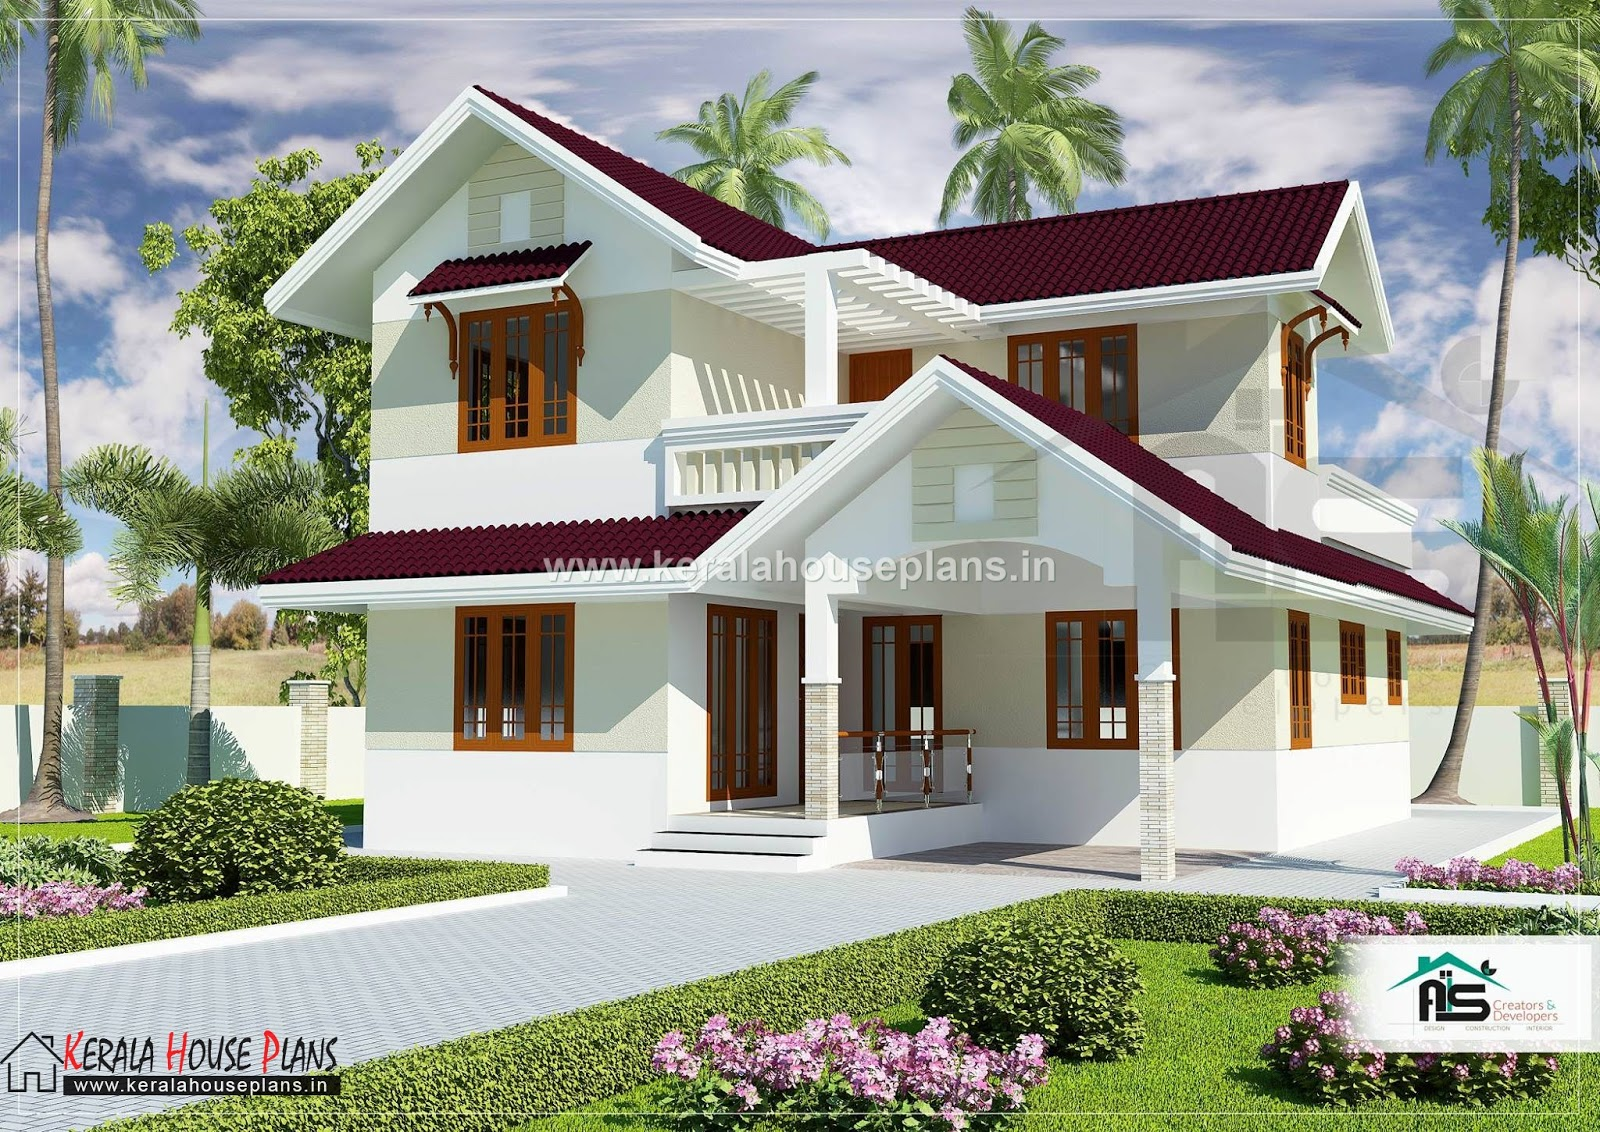 Kerala model house plans with elevation 1829 sqft kerala for Kerala house models and plans